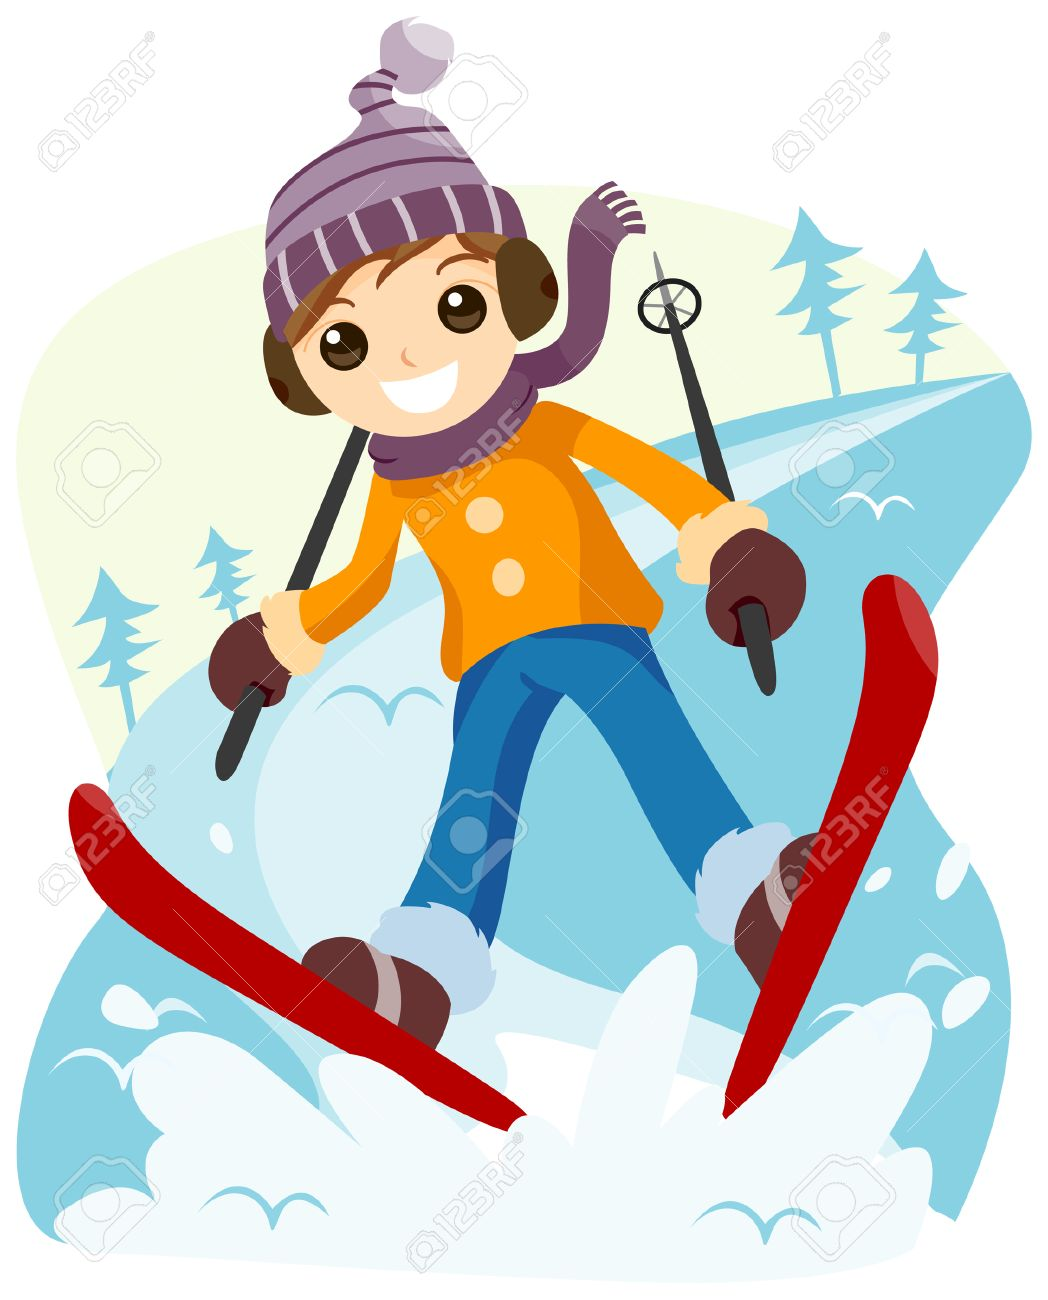 boy skiing with clipping path royalty free cliparts vectors and rh 123rf com skiing clipart images skiing clipart free